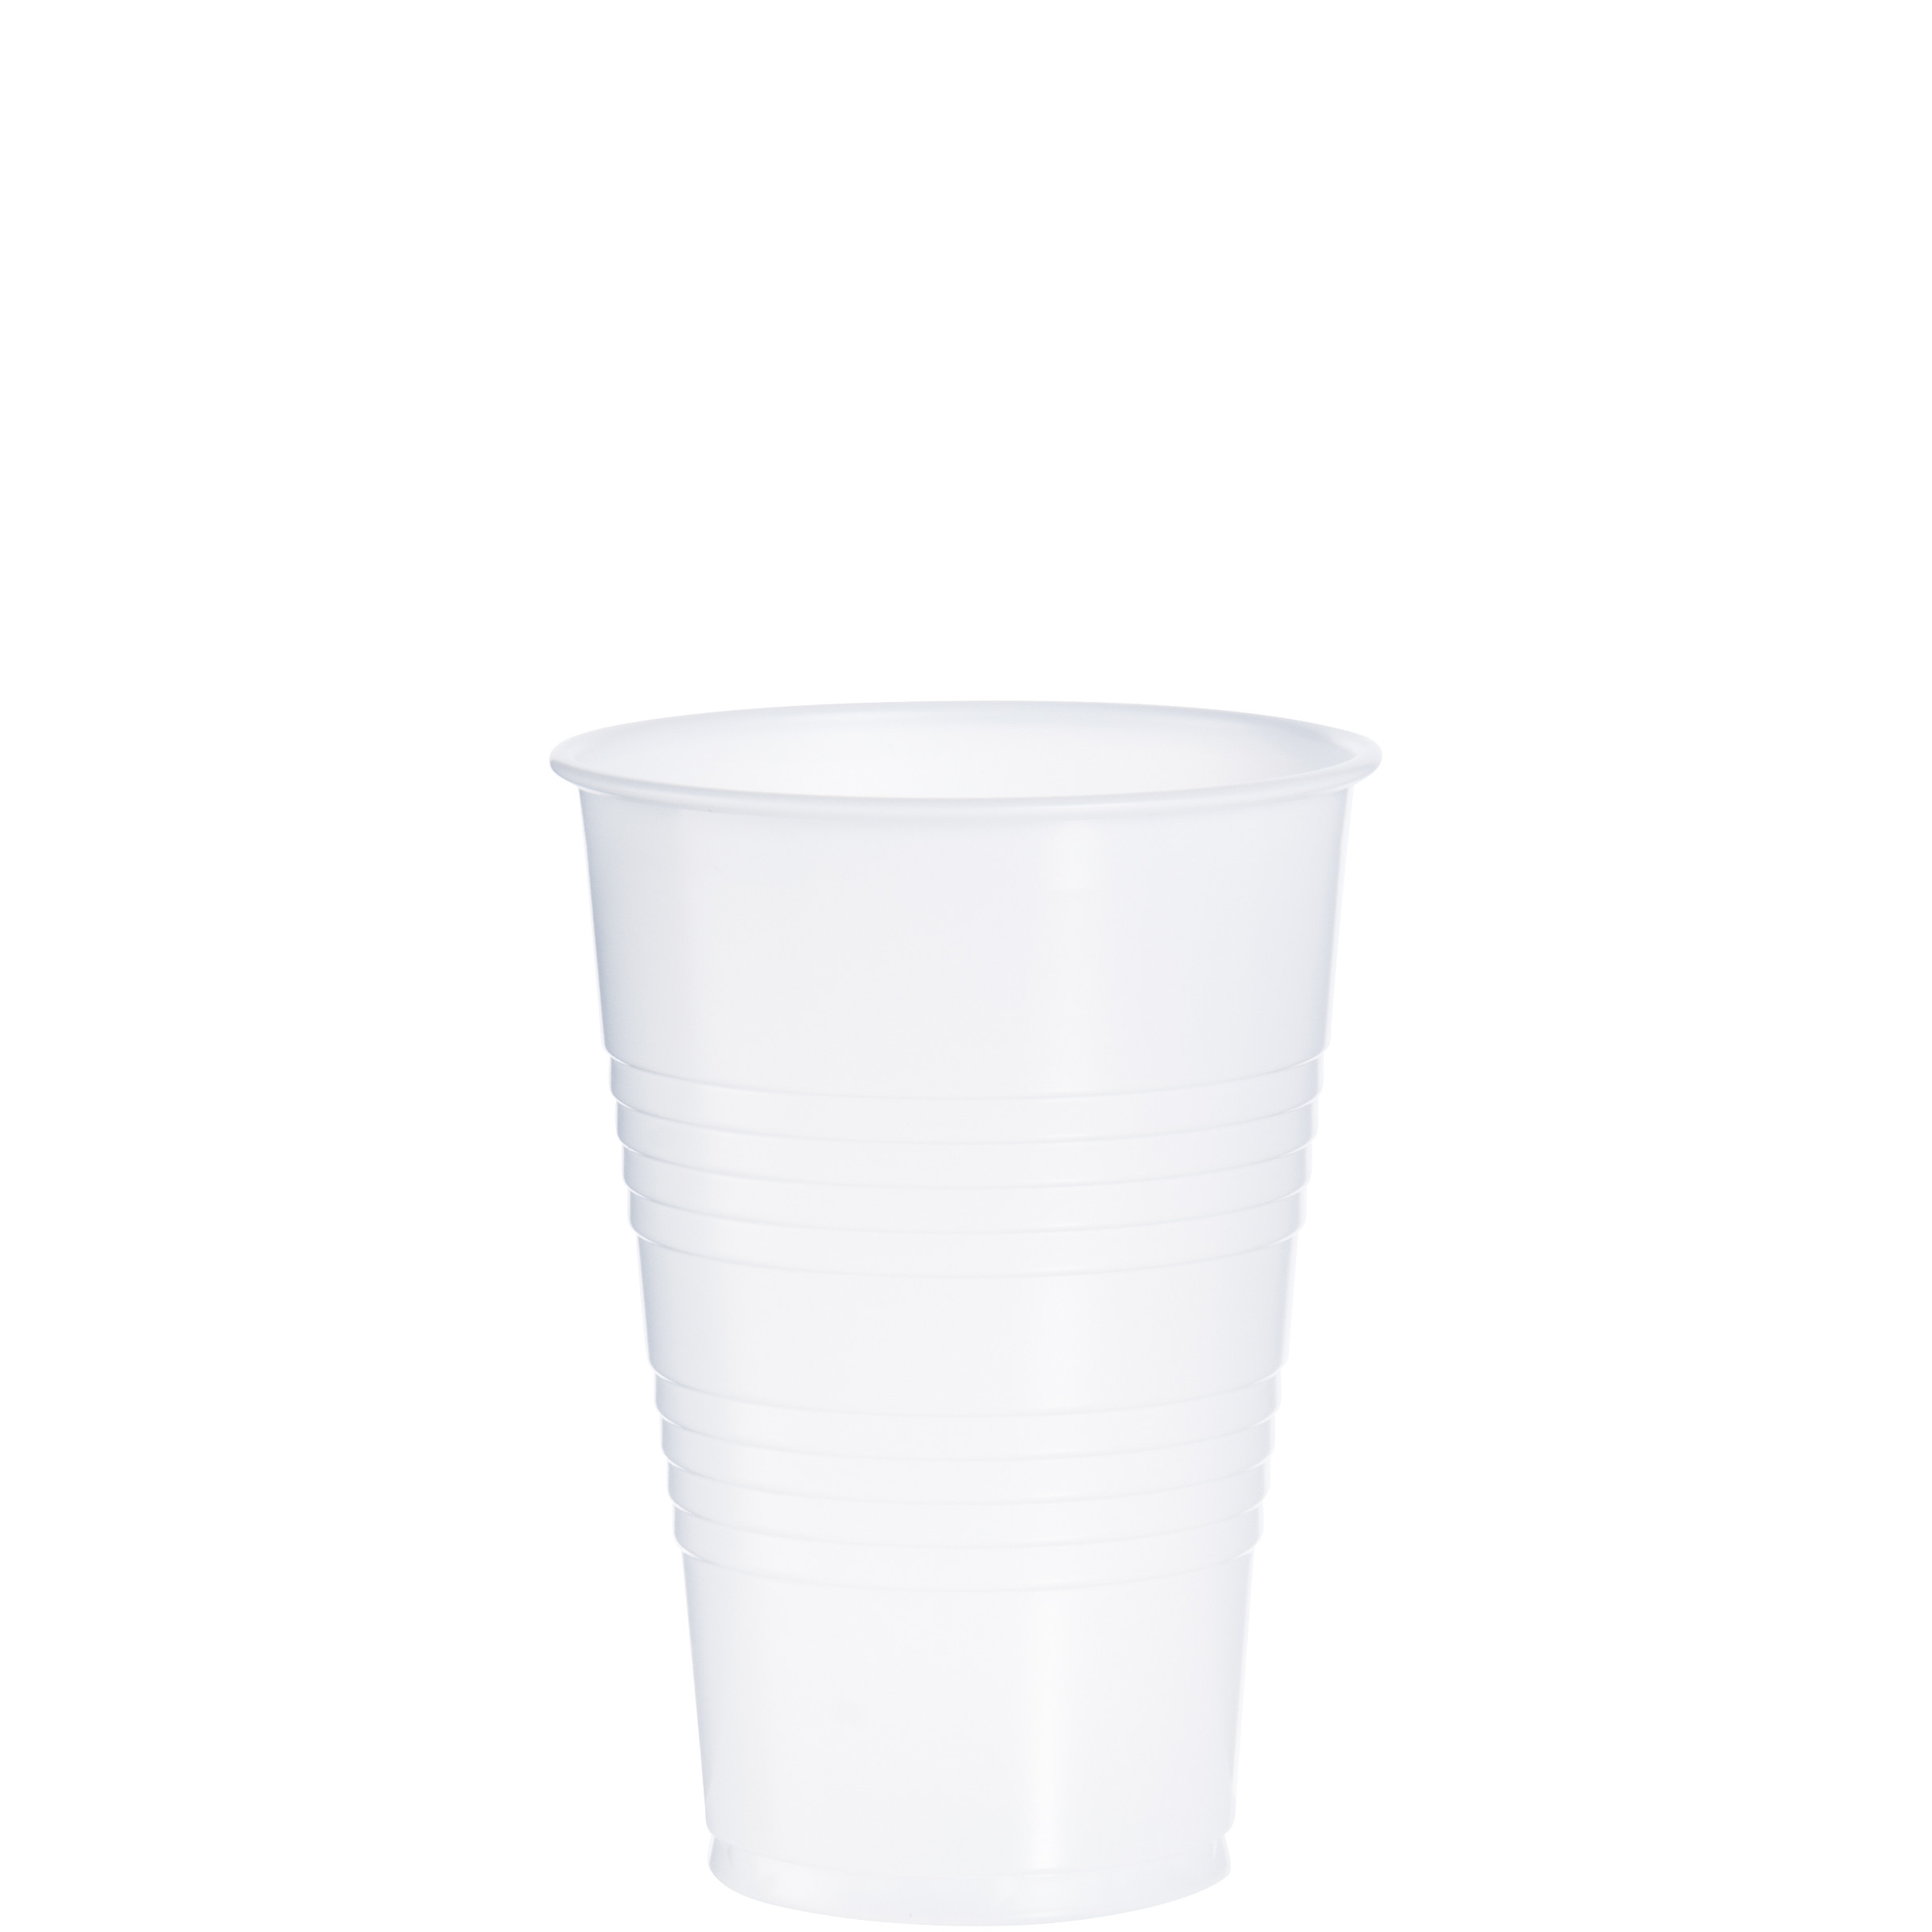 PLASTIC CUP 16PX CLEAR